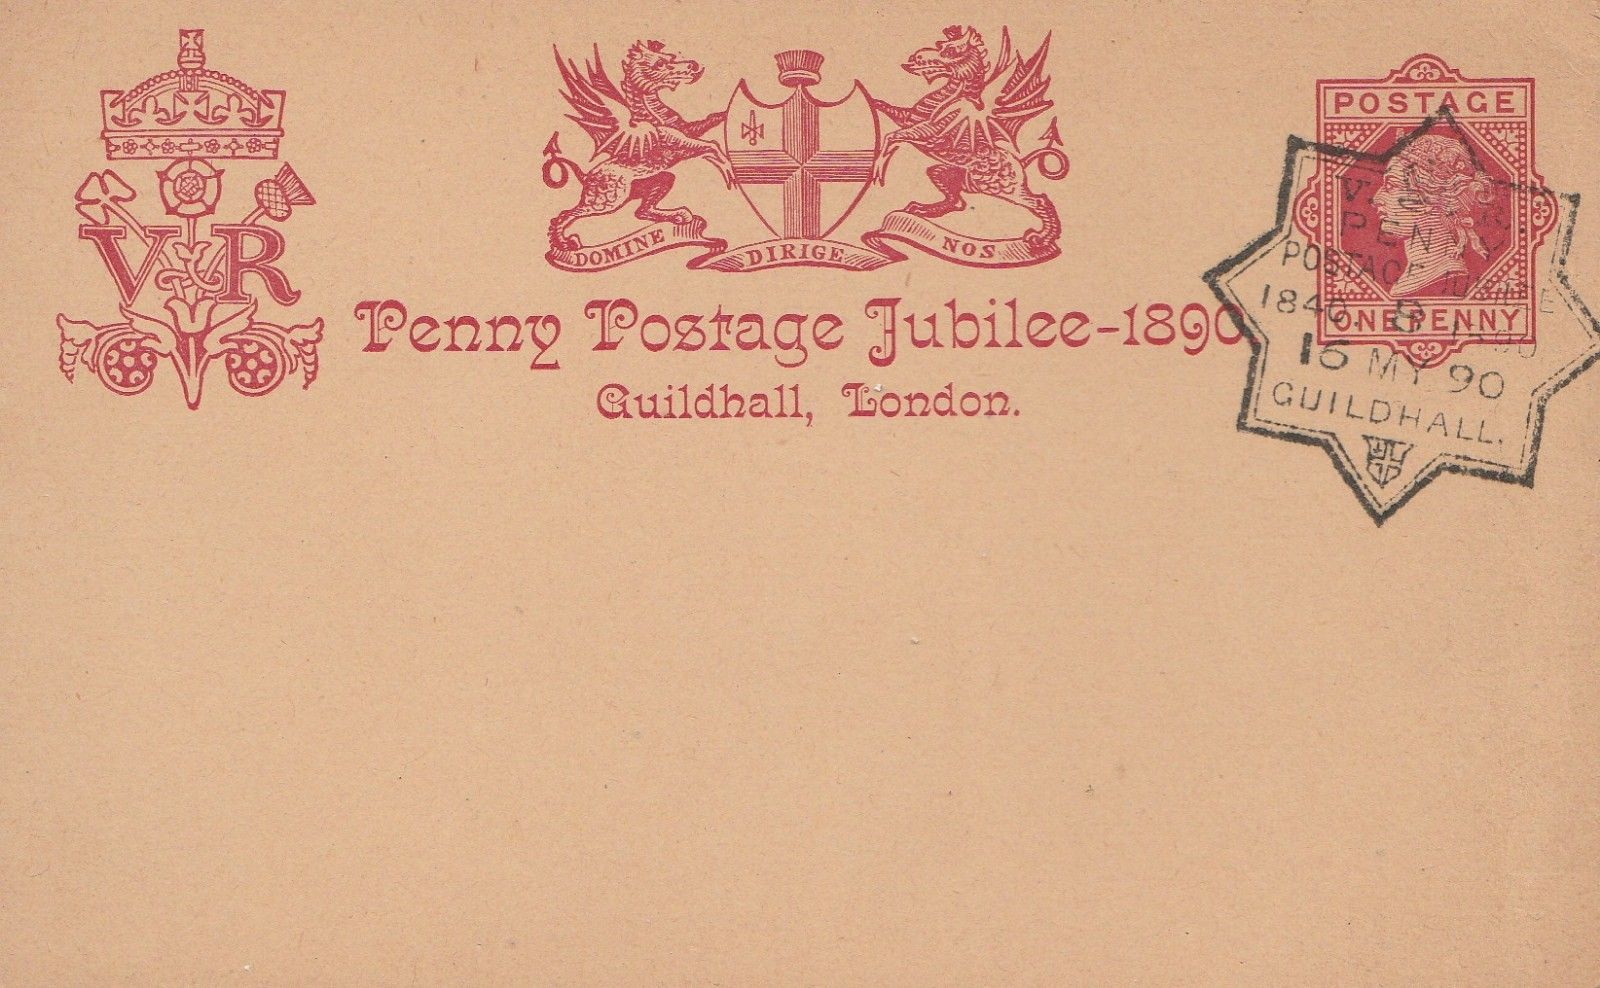 Great Britain postal card marking the 50th anniversary of Penny Postage. The special starred postmark from Guildhall, London, is dated May 15, 1890.